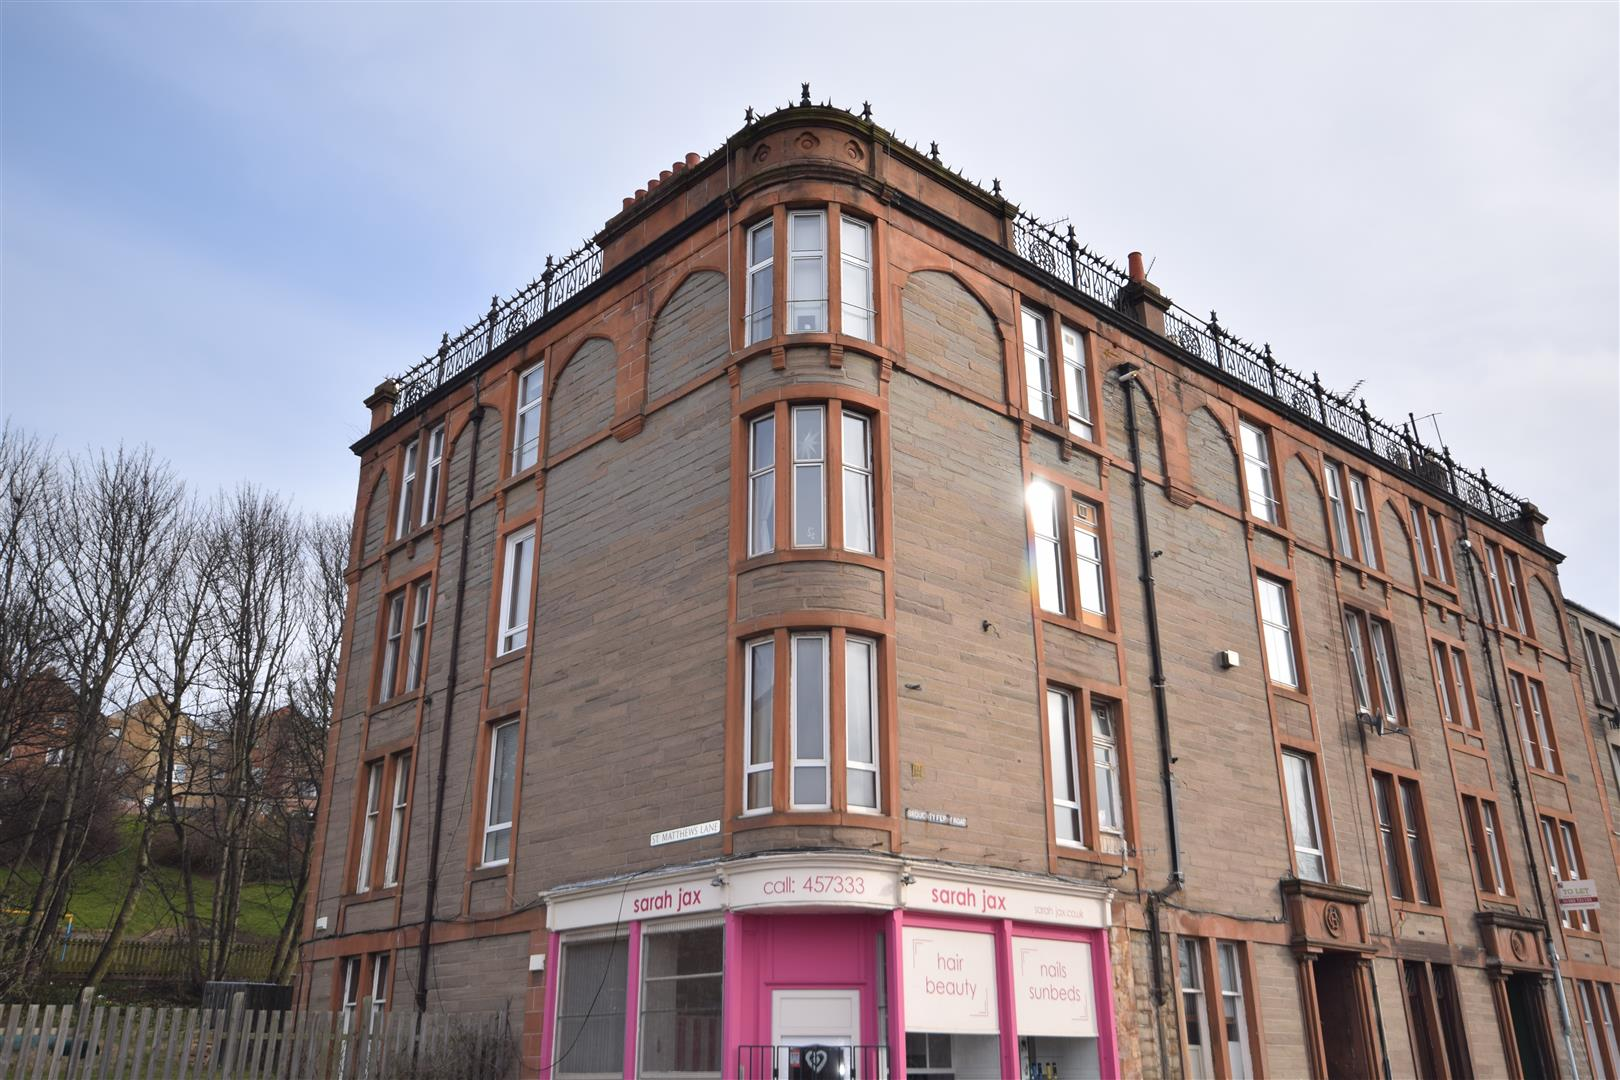 84D, Broughty Ferry Road, Dundee, Angus, DD4 6JS, UK